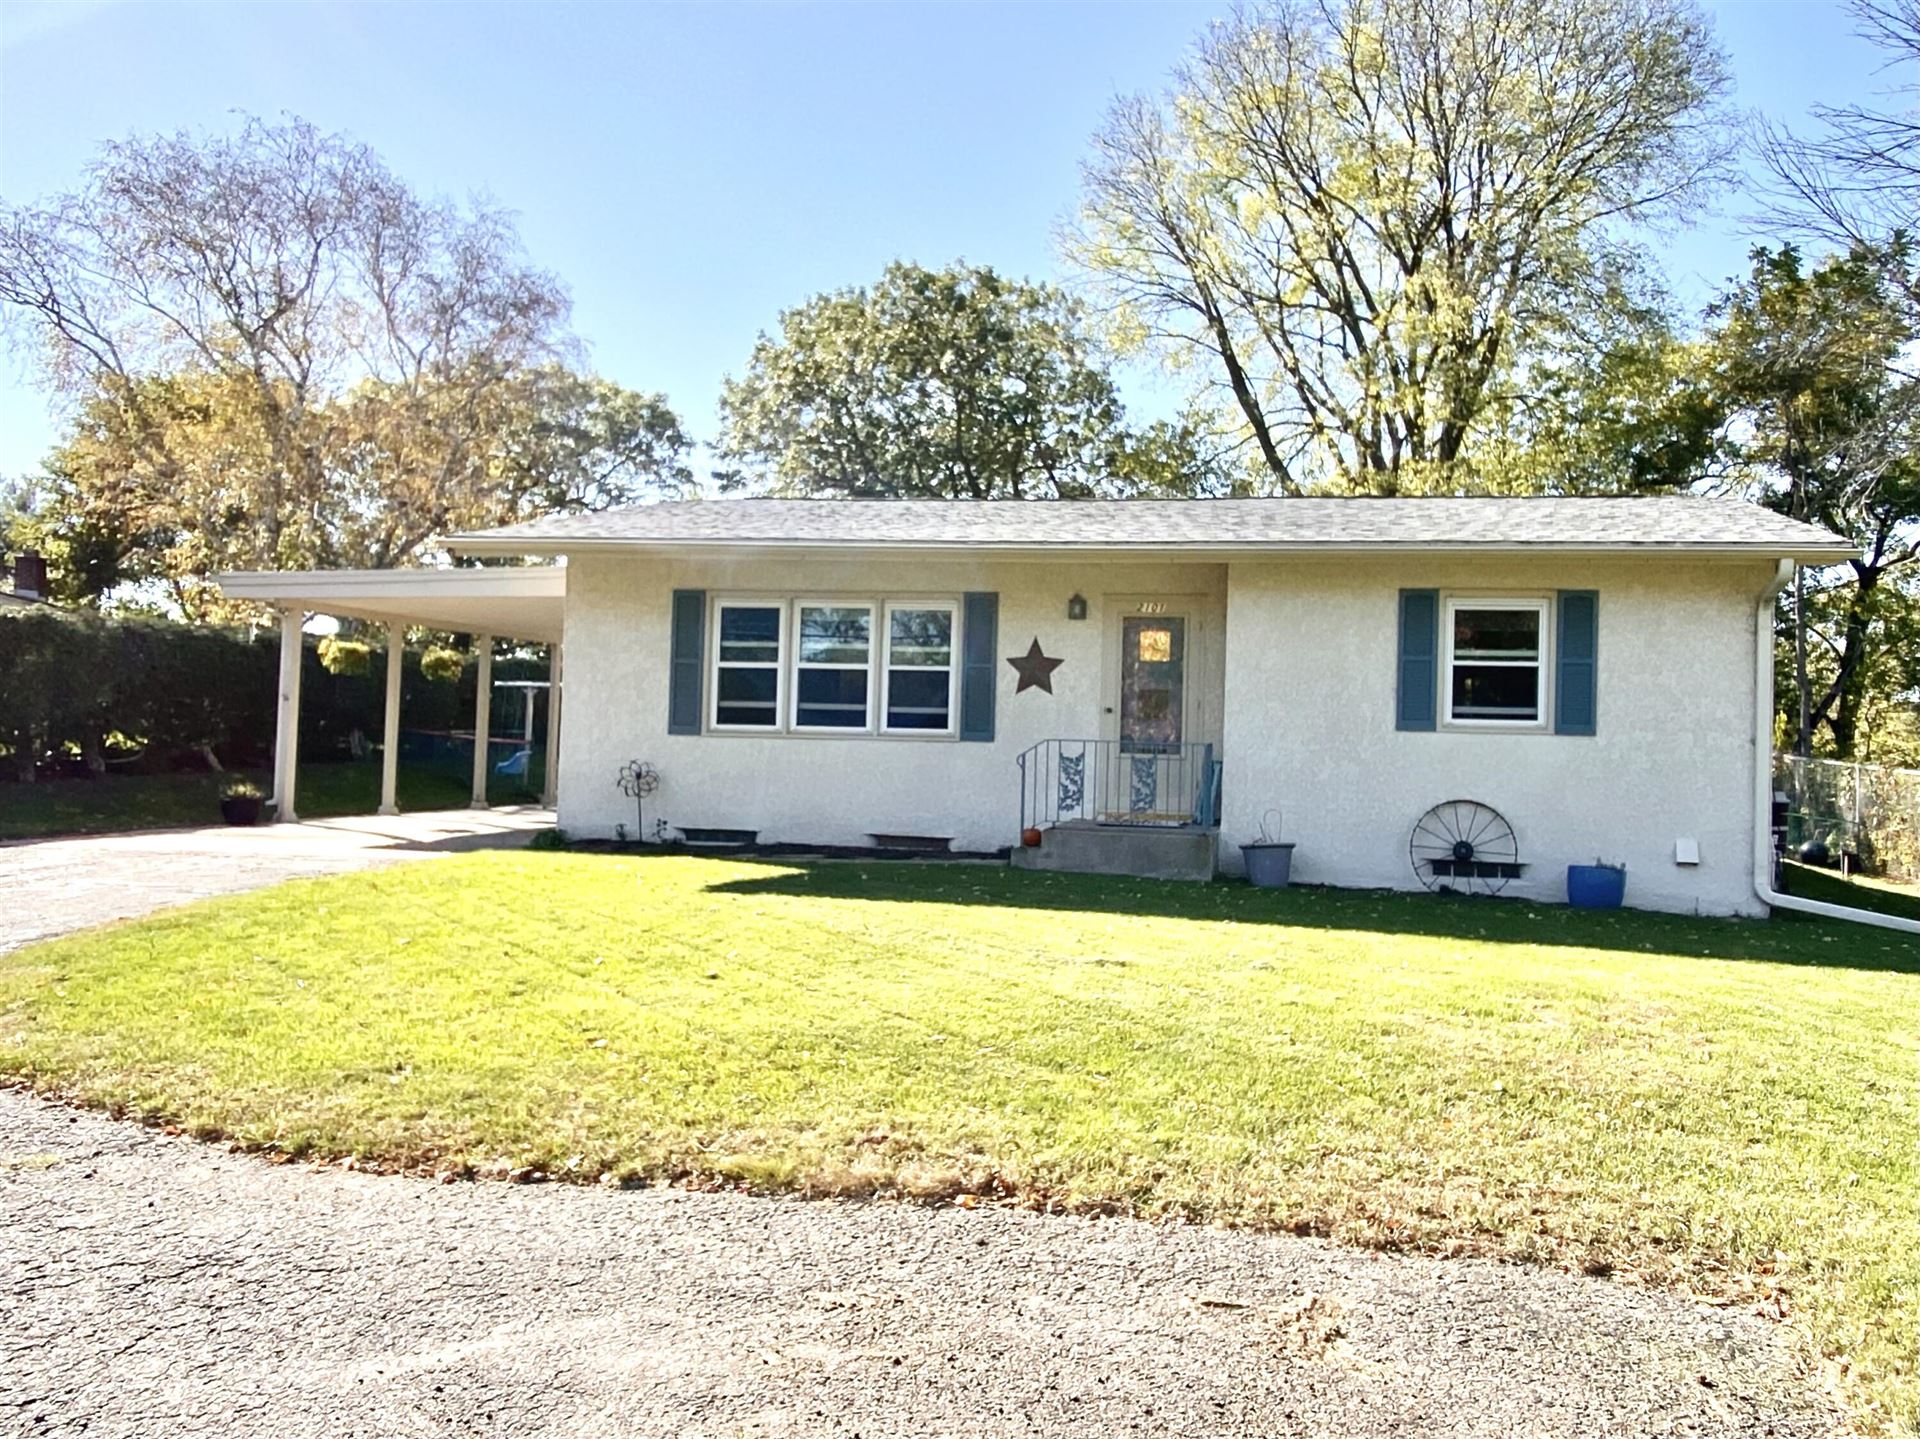 2101 Lakeshore Dr, Campbell, WI 54603 - MLS#: 1768613